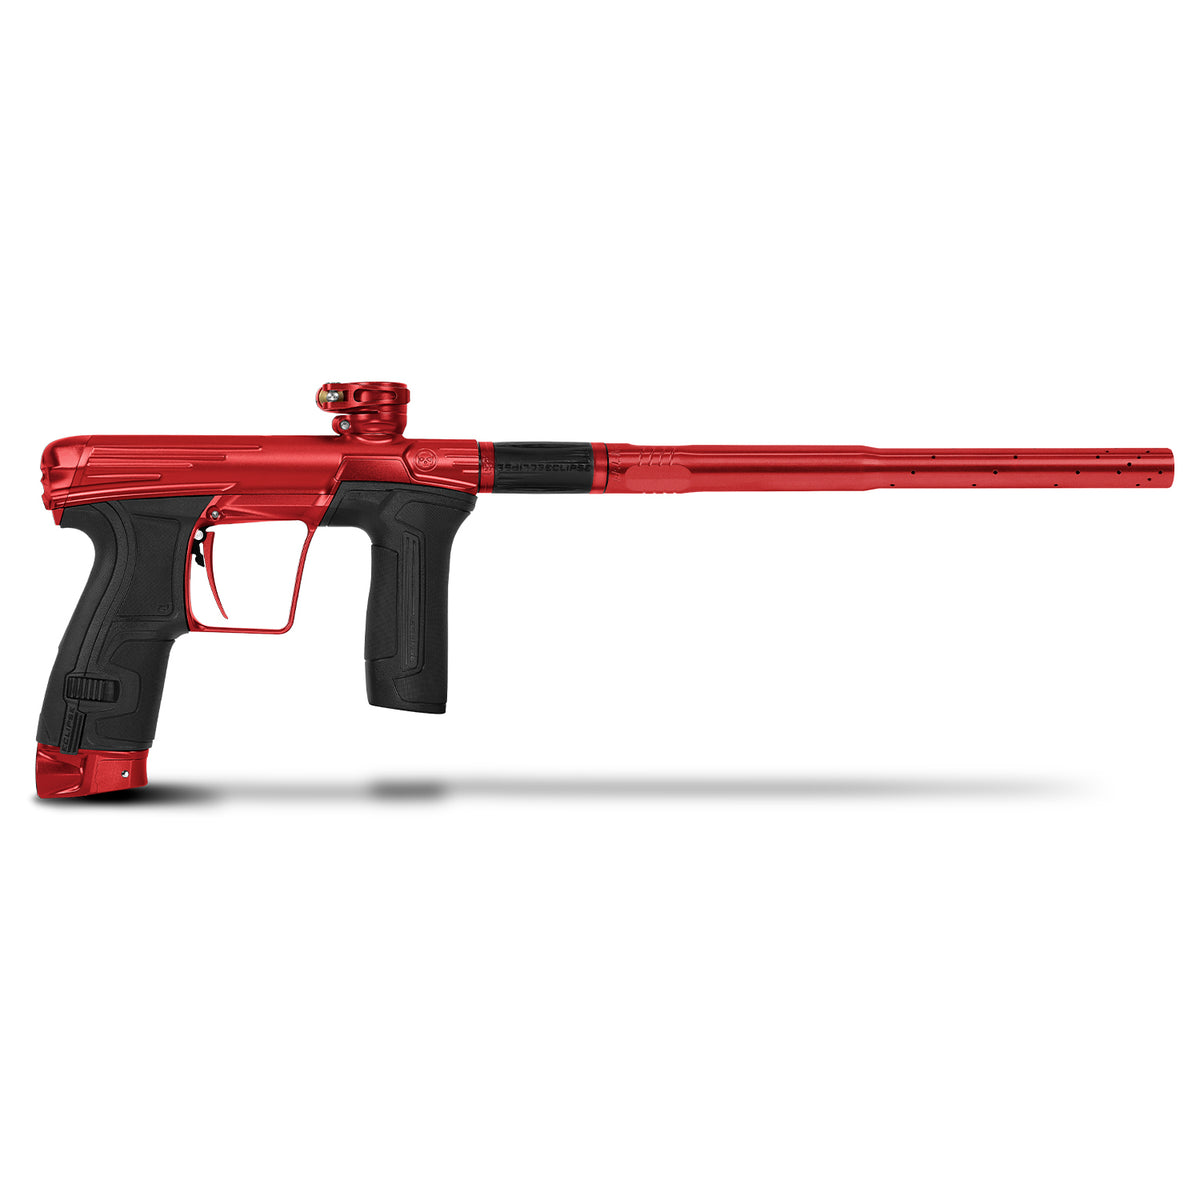 - USED - Infamous Skull Edition CS2Pro DNA Paintball Marker - SITH